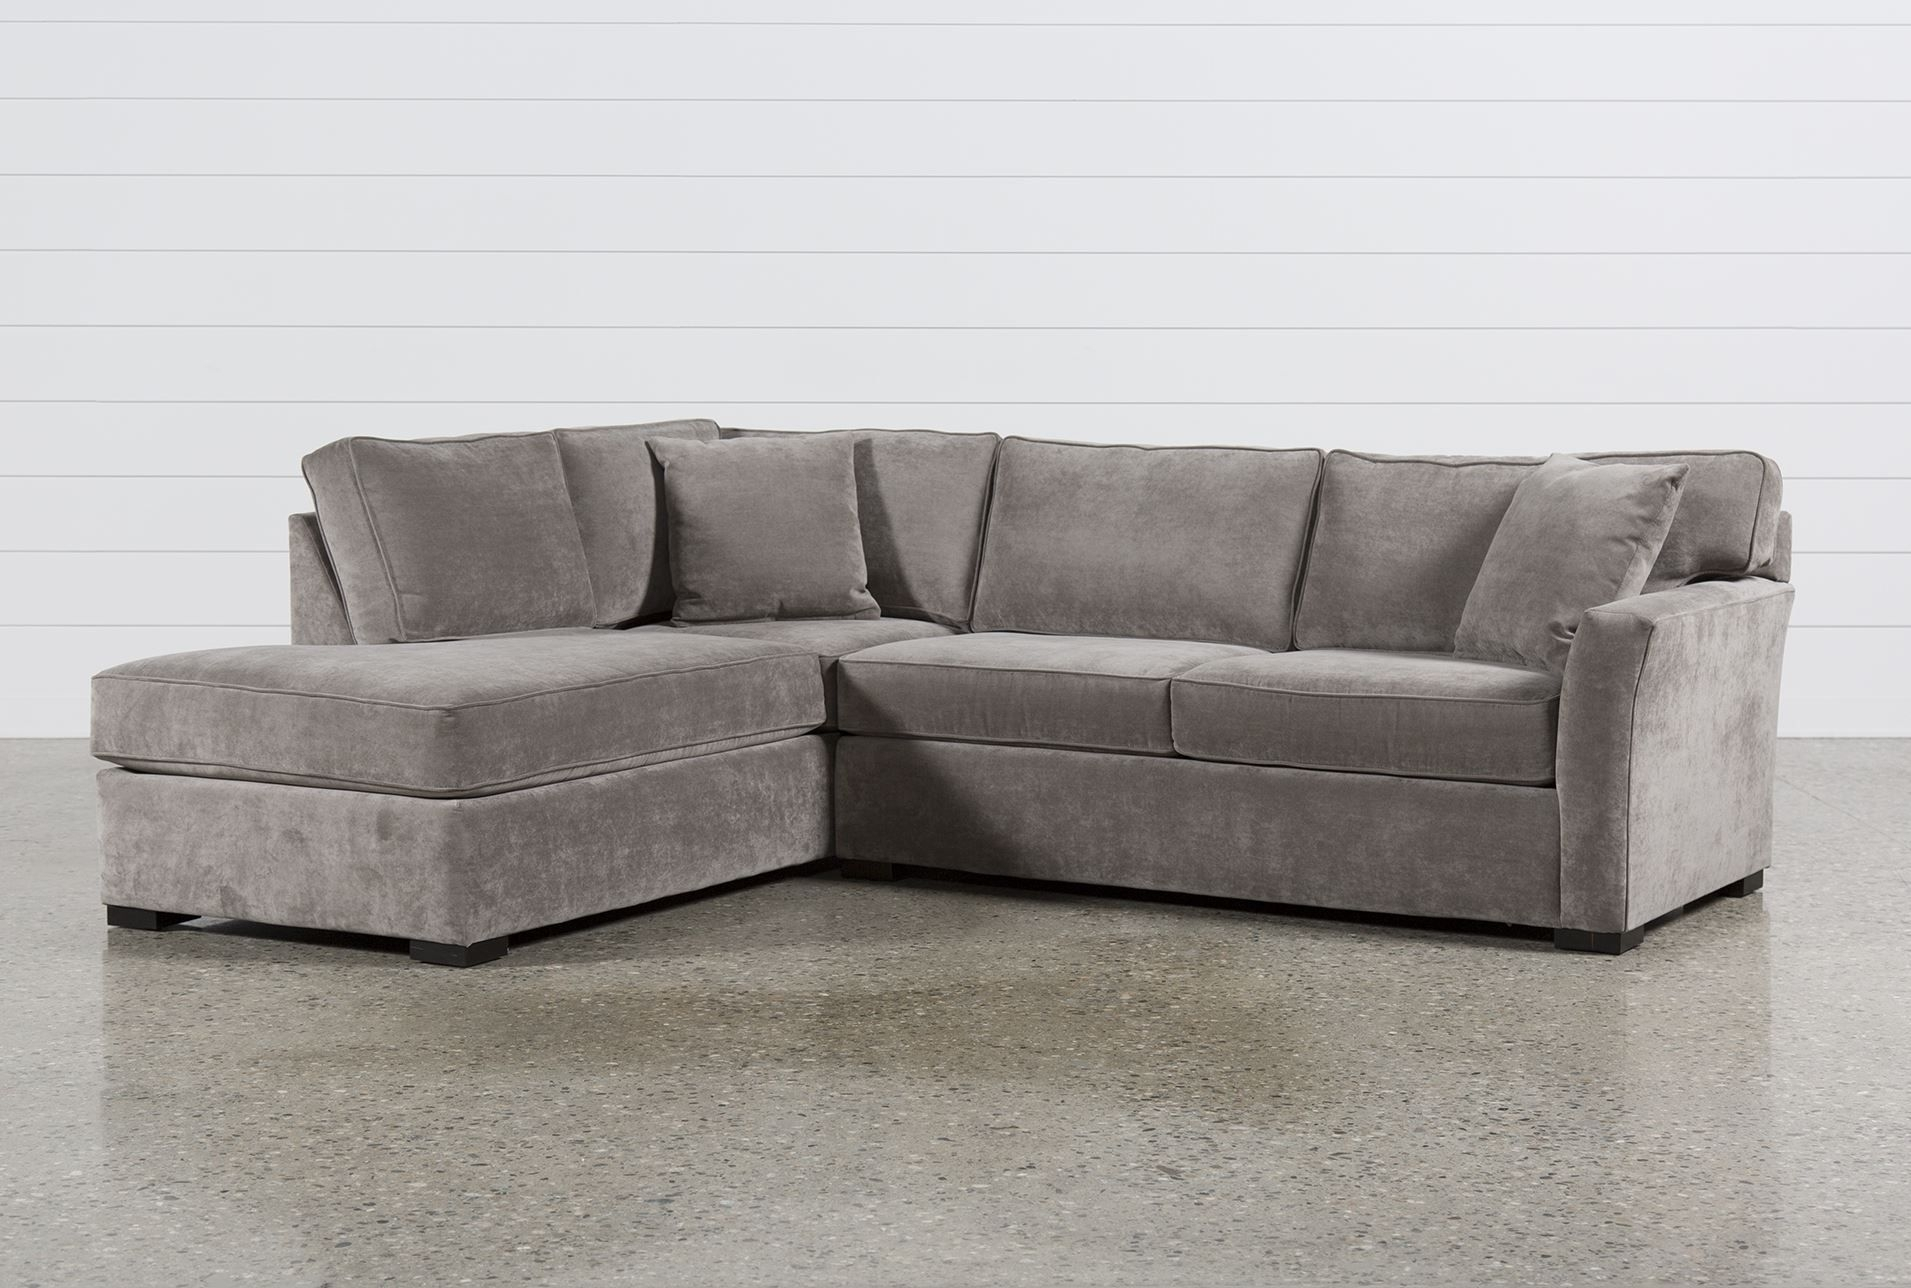 Aspen 2 Piece Sectional W/laf Chaise, Grey, Sofas | Aspen And Apartments pertaining to Delano Smoke 3 Piece Sectionals (Image 4 of 30)